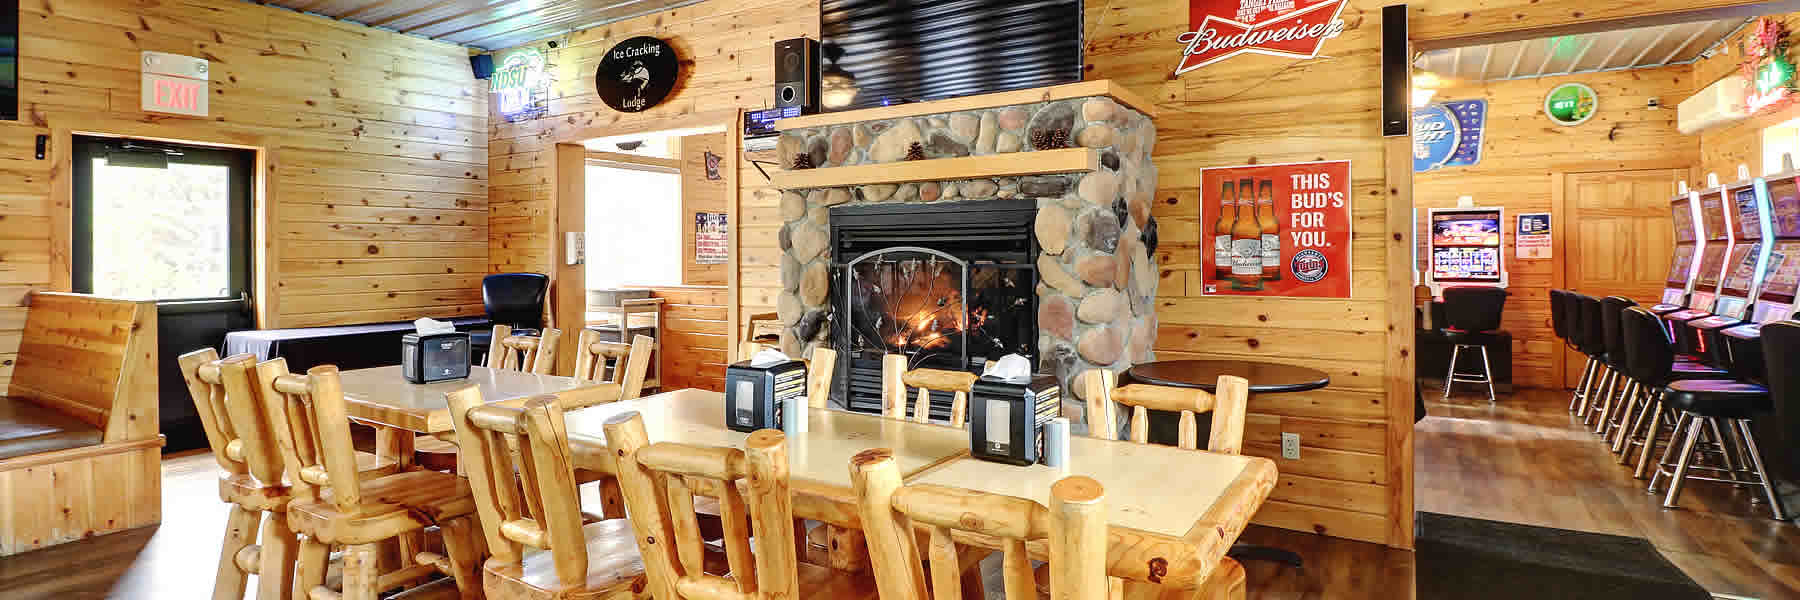 Enjoy dining and socializing at the Ice Cracking Restaurant near Ponsford, Minnesota.